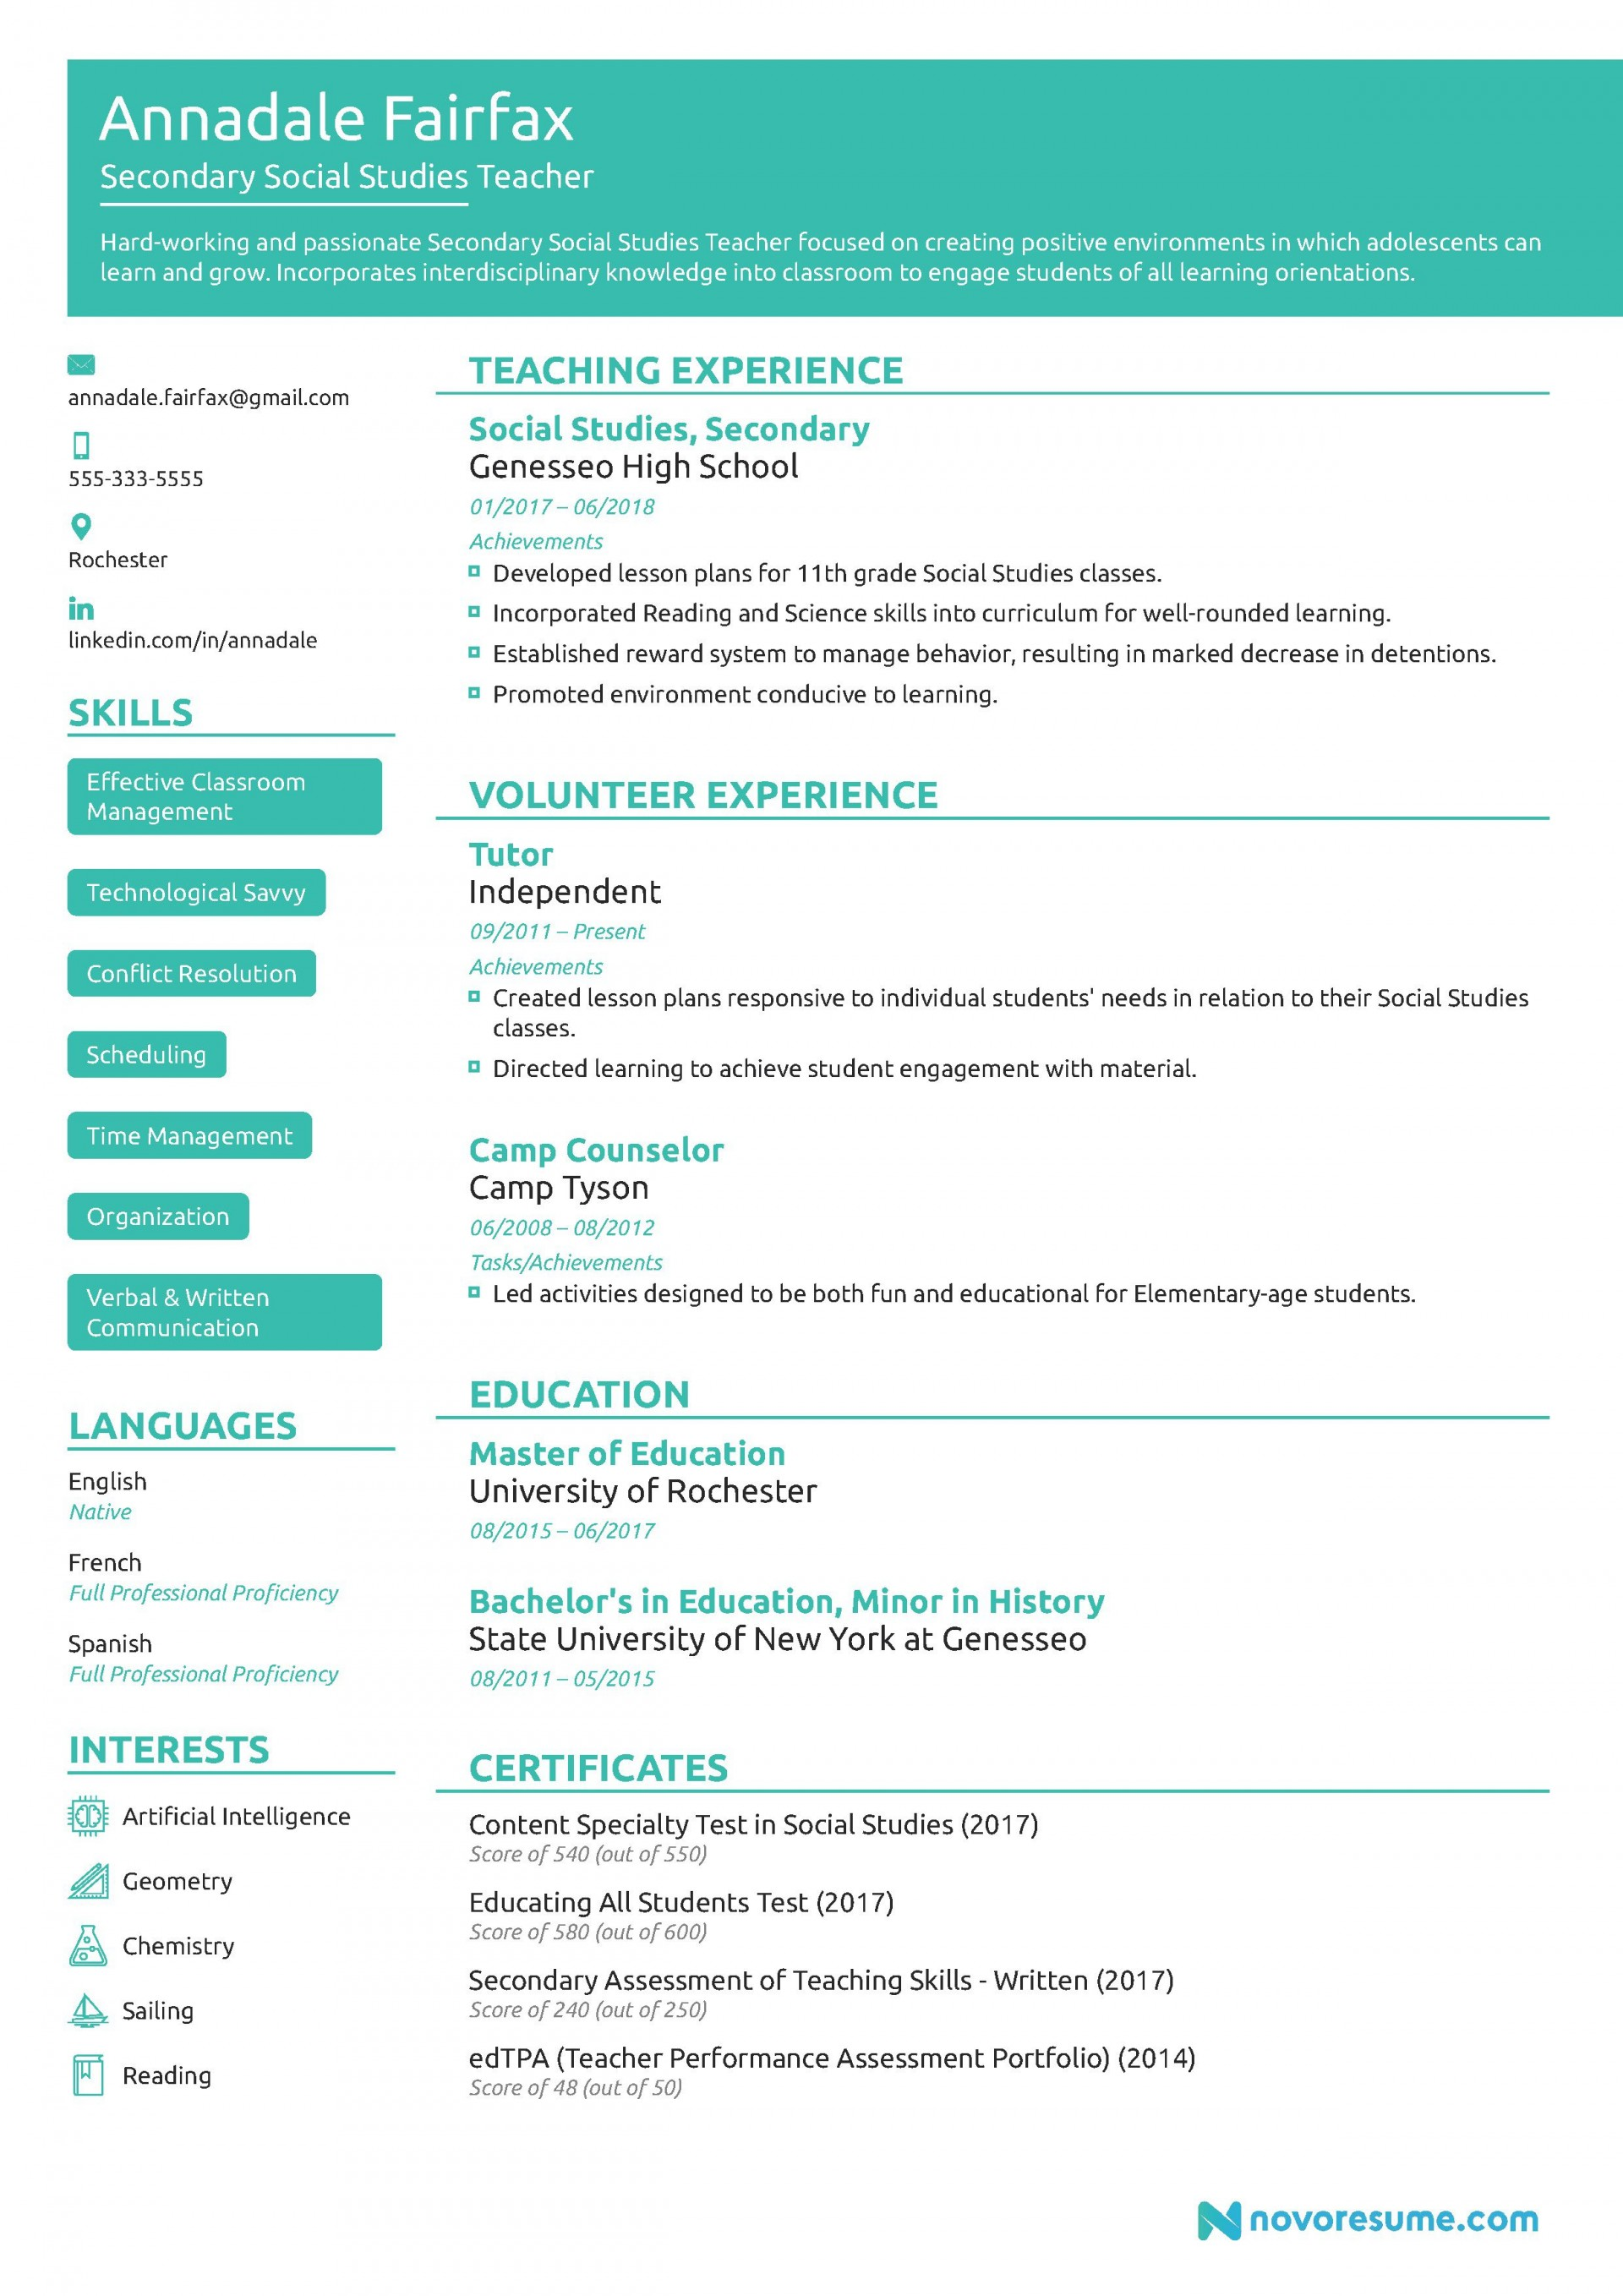 009 Wondrou Resume Template For Teacher Photo  Free Download Australia Microsoft Word 20071920